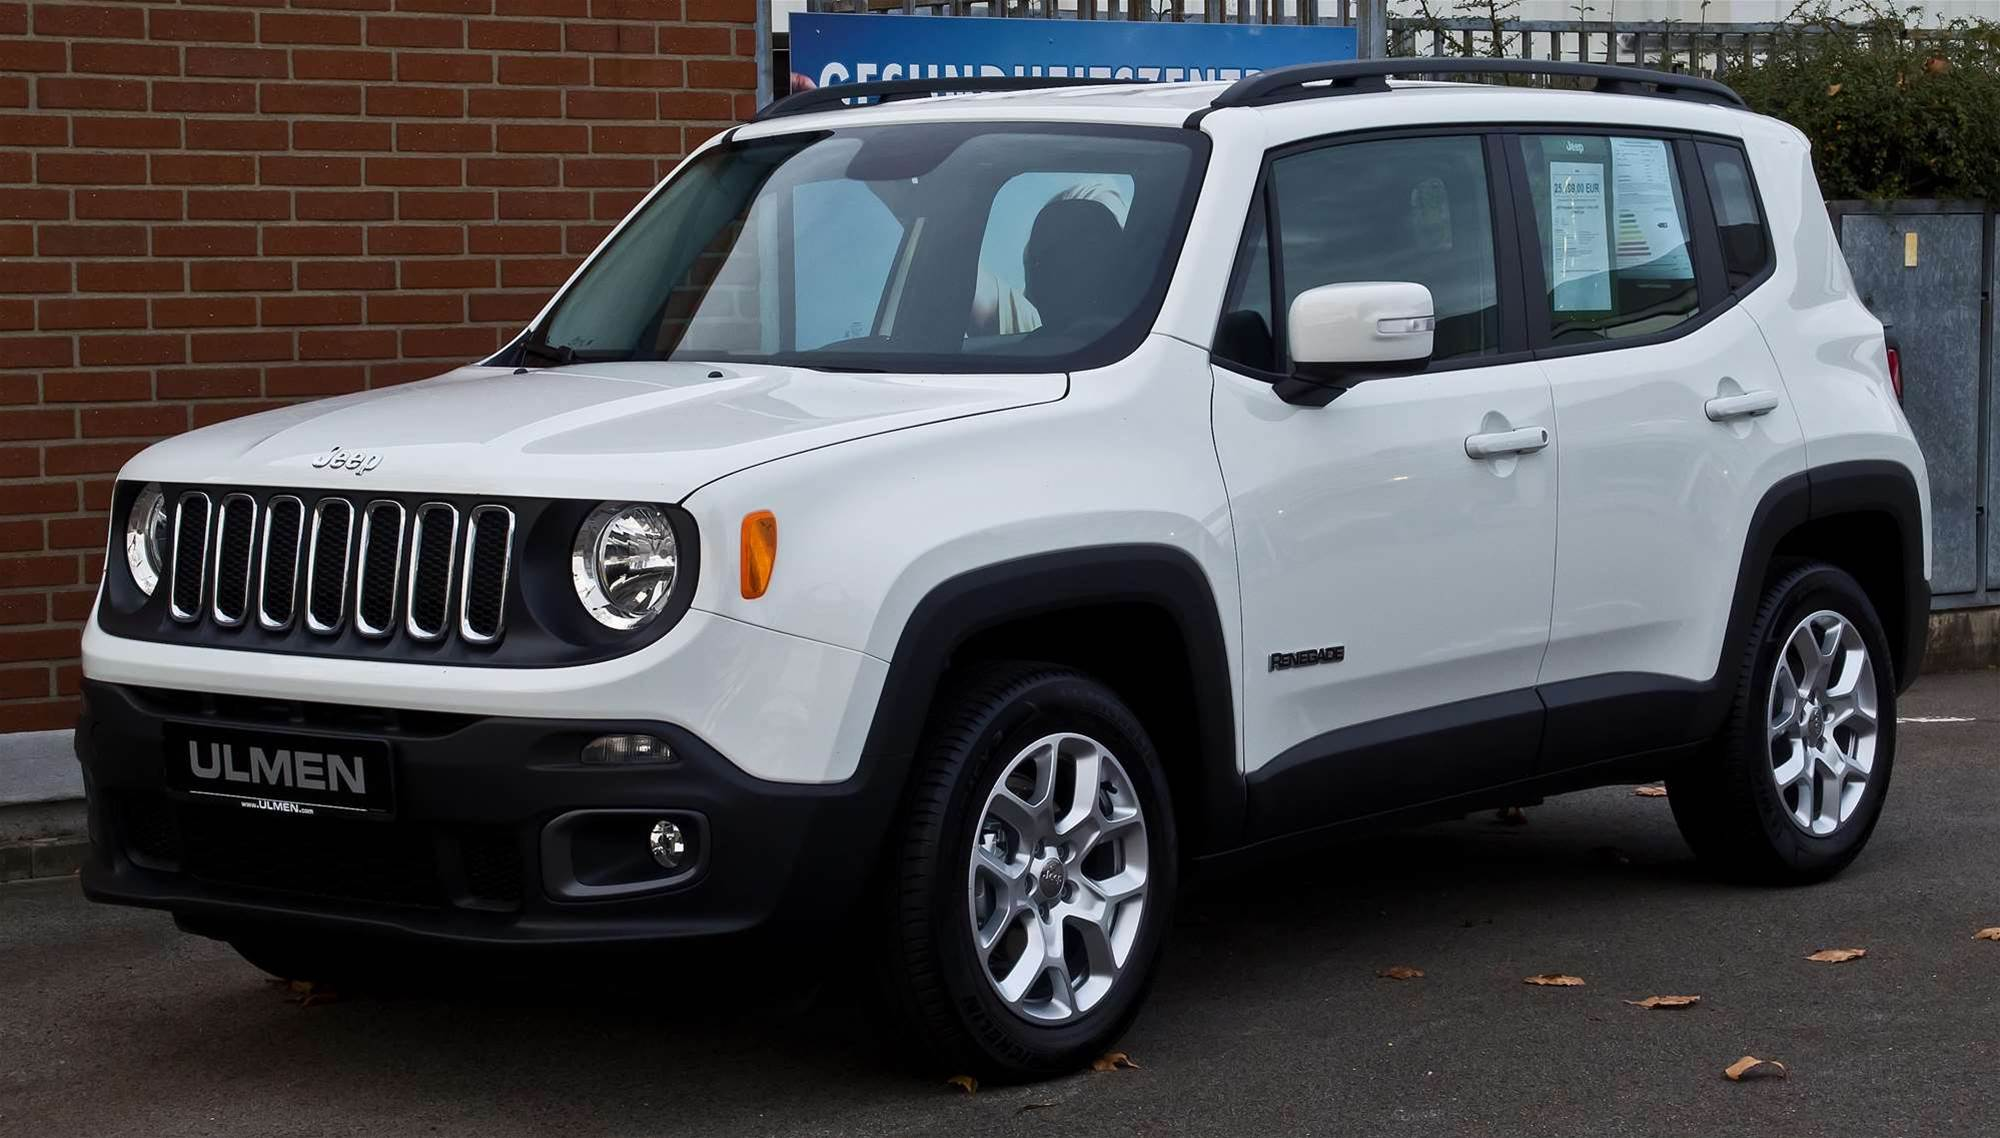 Infosec experts hack Jeep, gain control of moving car